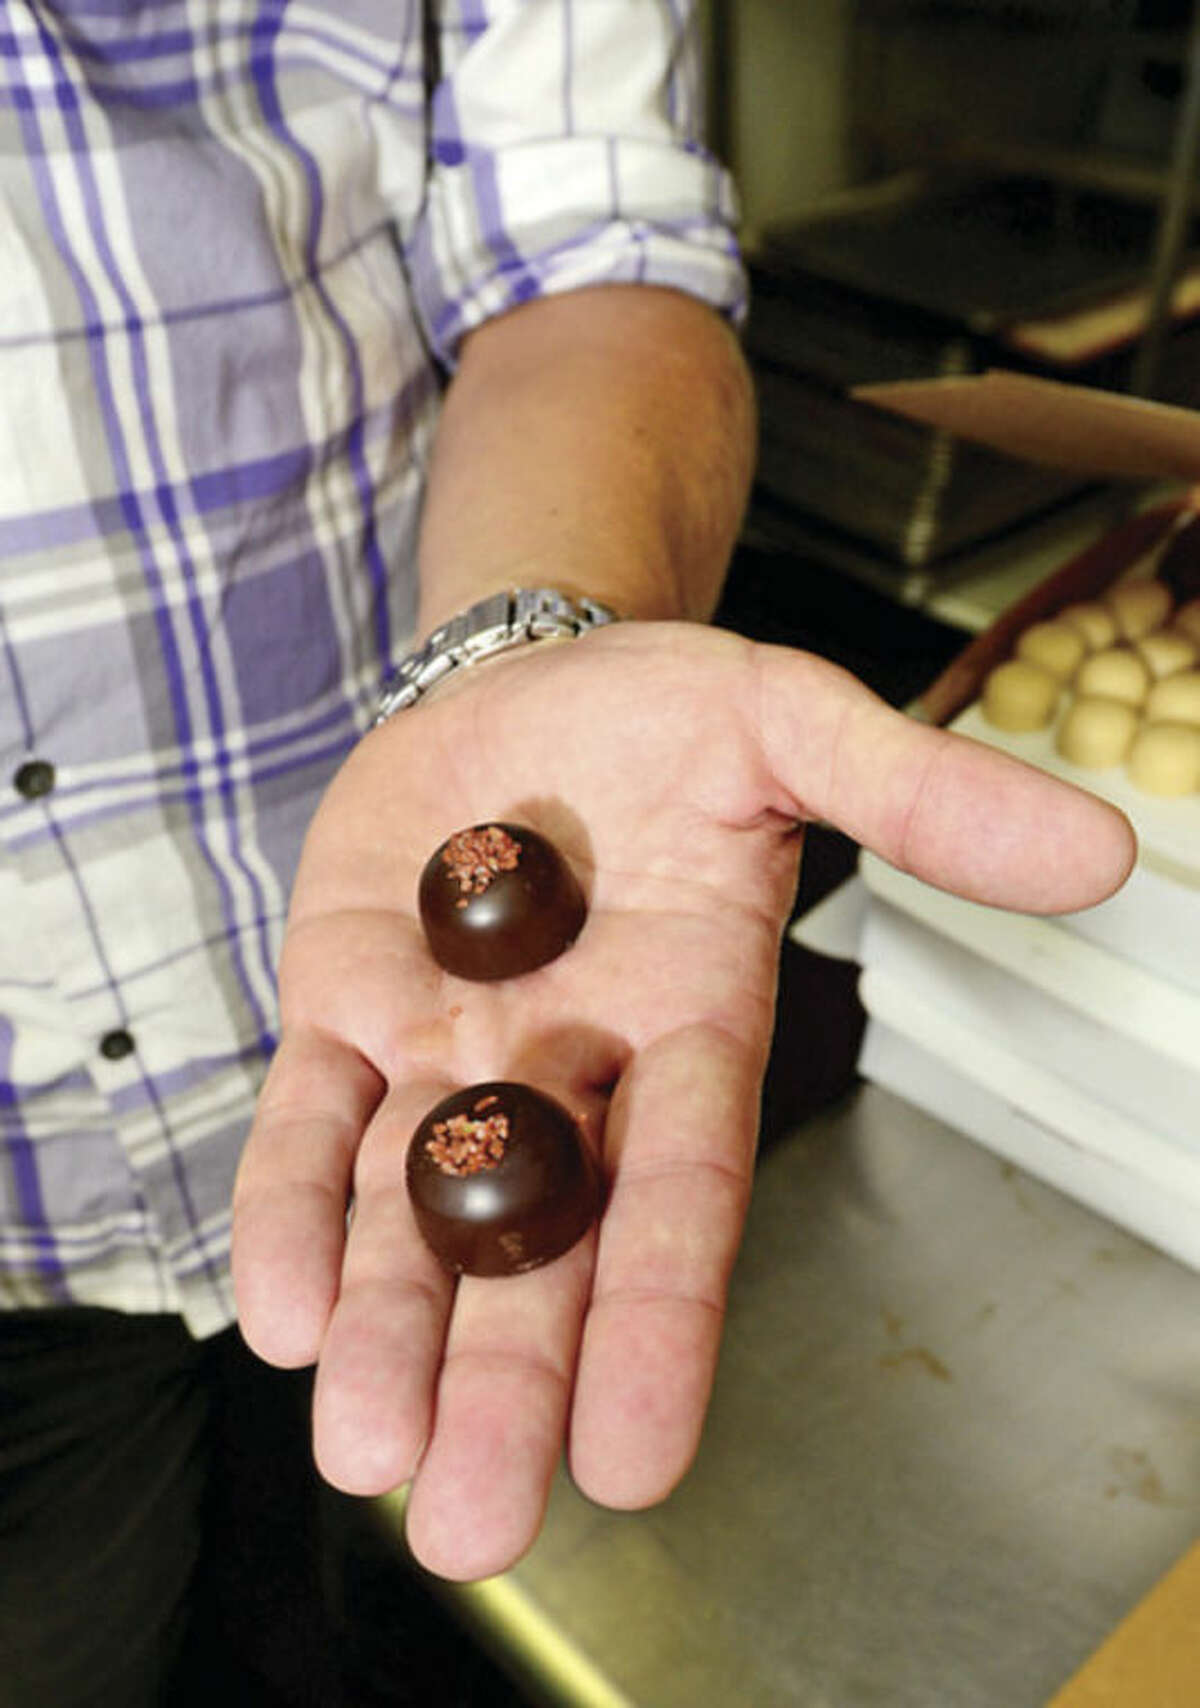 @Cutline Byline:Hour photo / Erik Trautmann Fritz Knipschildt and his employees at Knipschildt Chocolatier / Chocopologie restaurant produce high quality chocolates including some made with sea salt in South Norwalk.